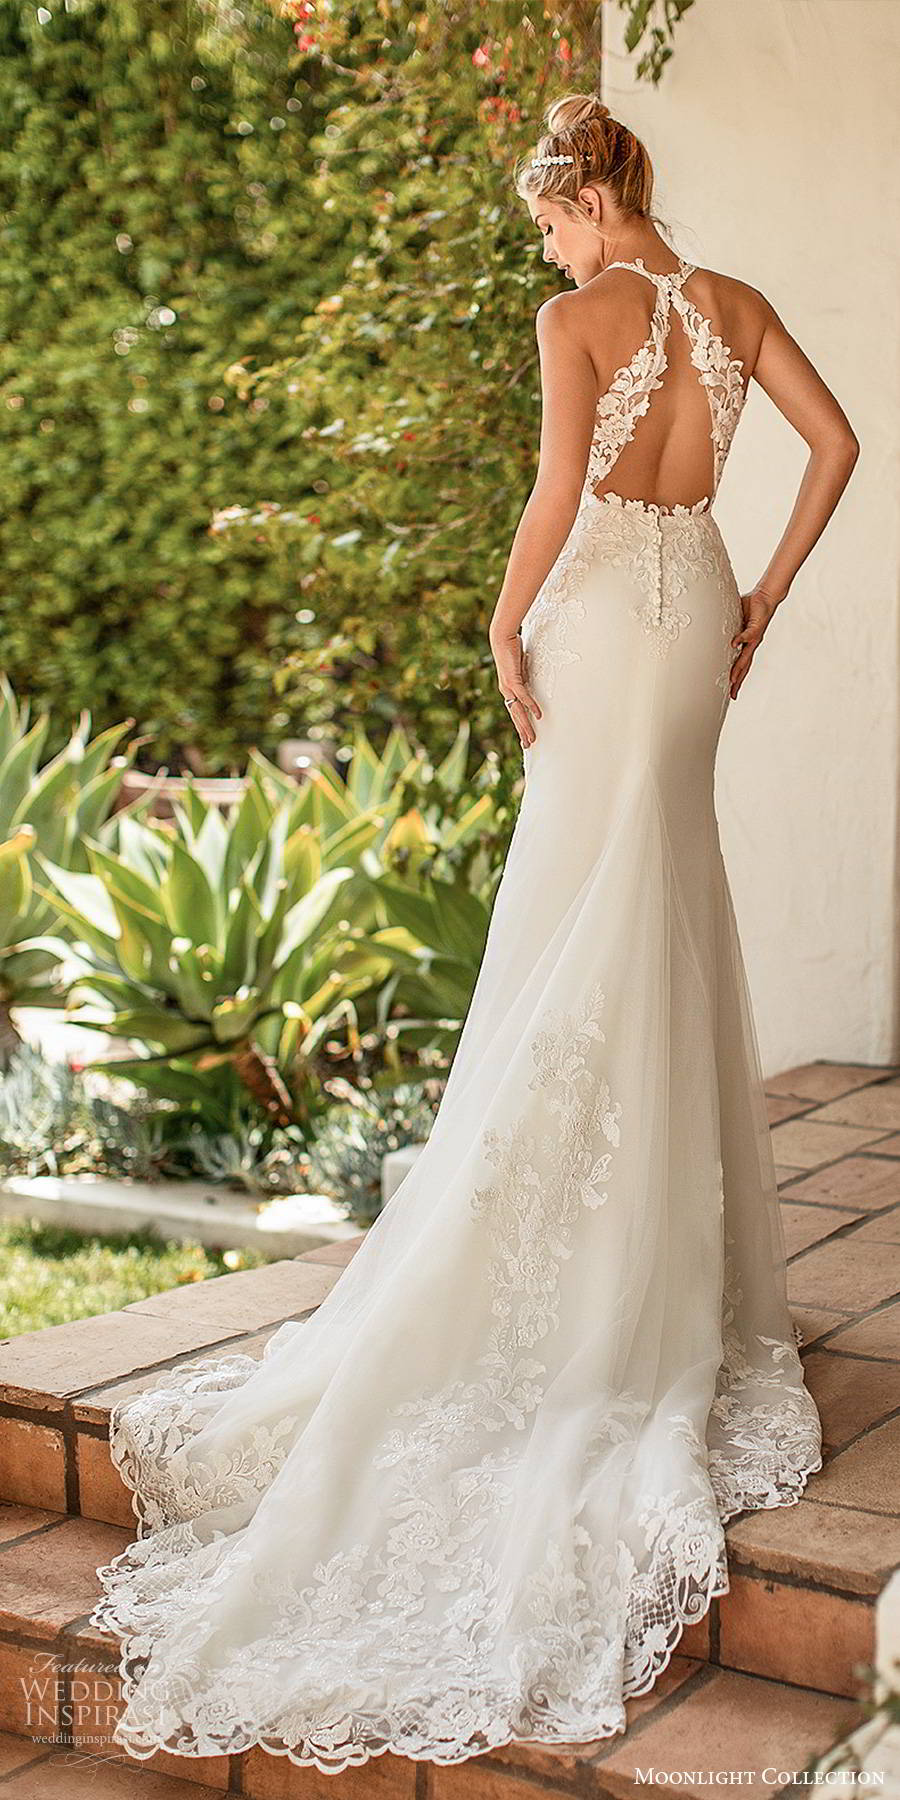 moonlight collection spring 2020 bridal sleeveless sheer straps plunging v neckline embellished bodice elegant sexy sheath fit flare wedding dress cutout back chapel train (11) bv